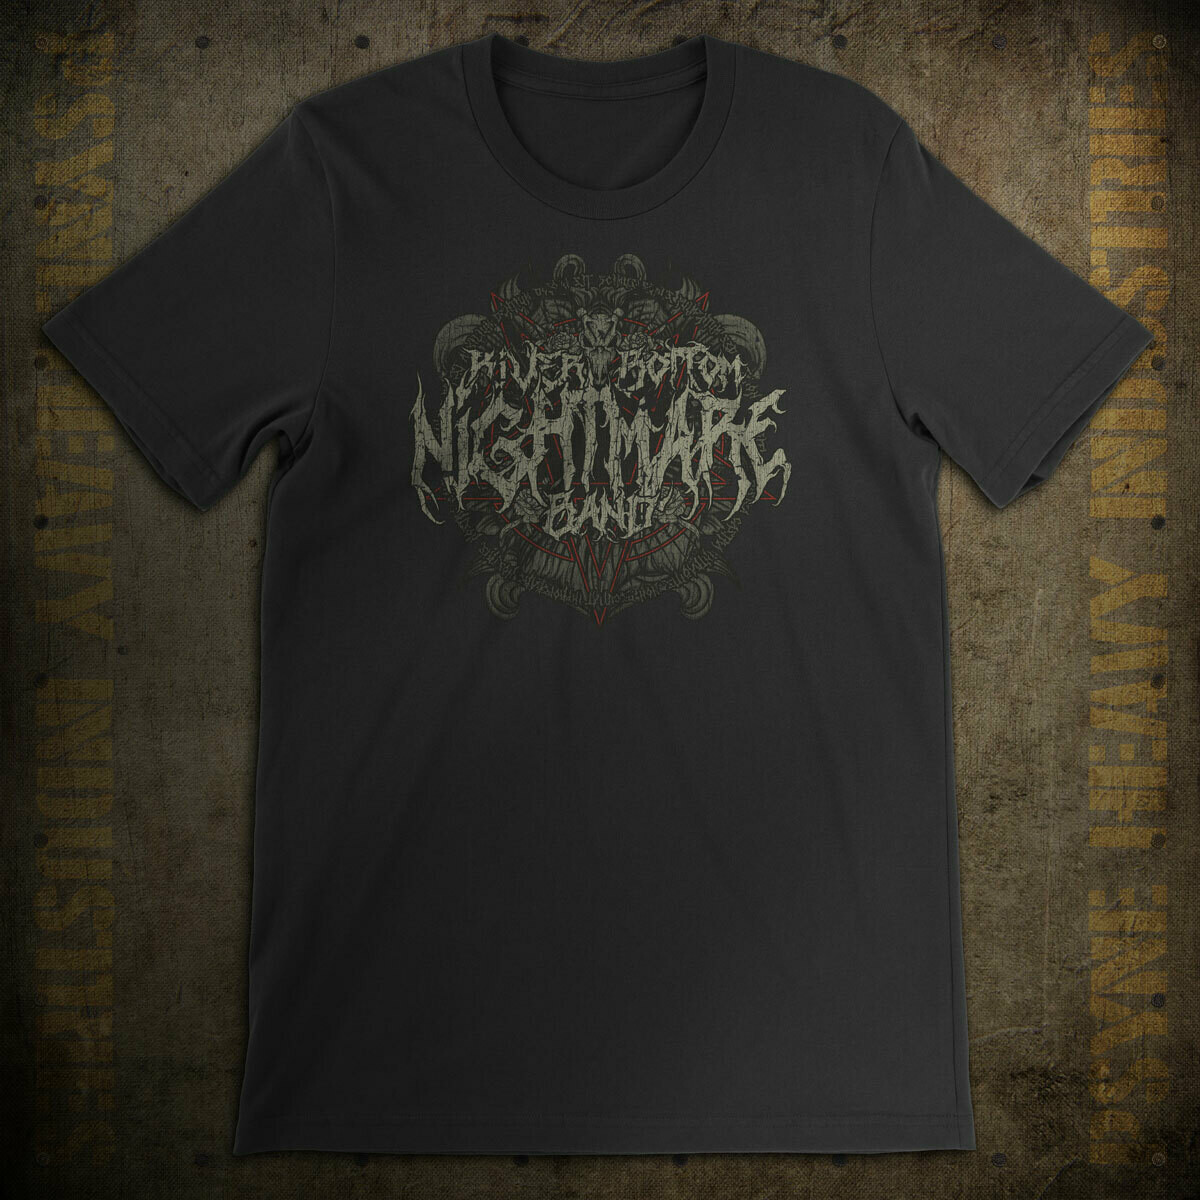 Riverbottom Nightmare Band Vintage Black Metal T-Shirt